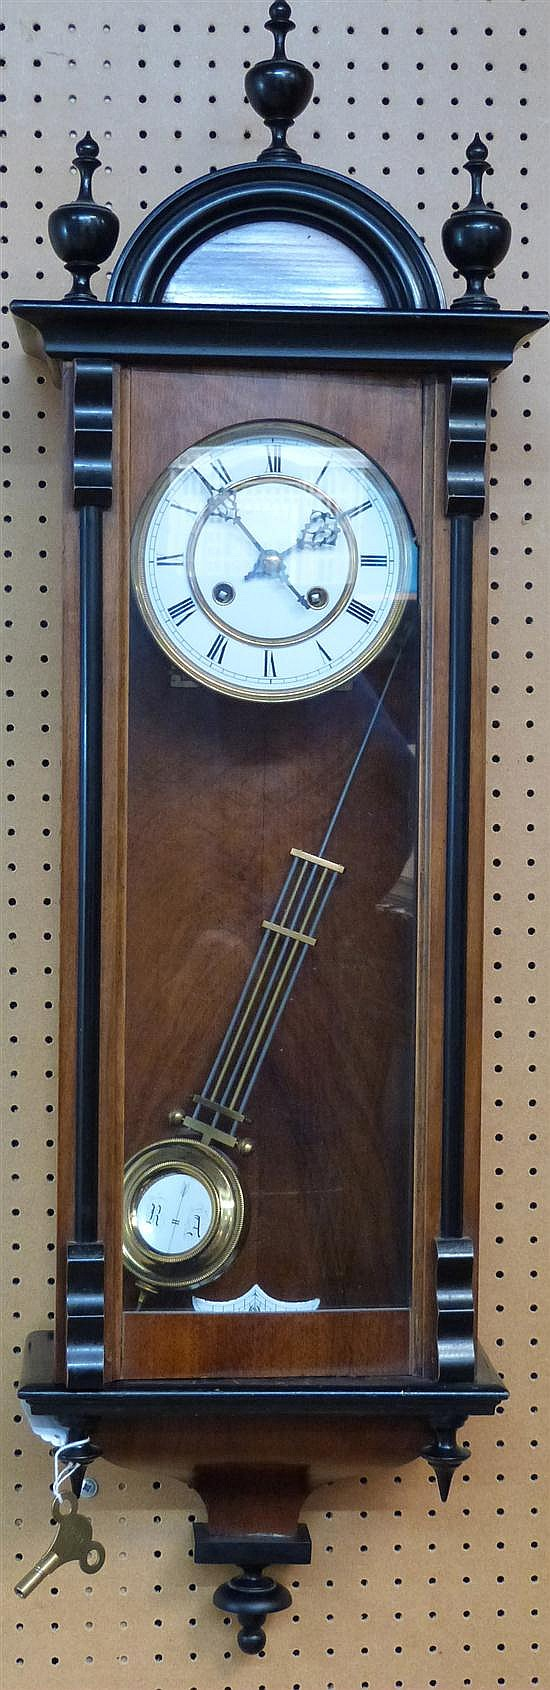 German walnut and ebonized wall clock